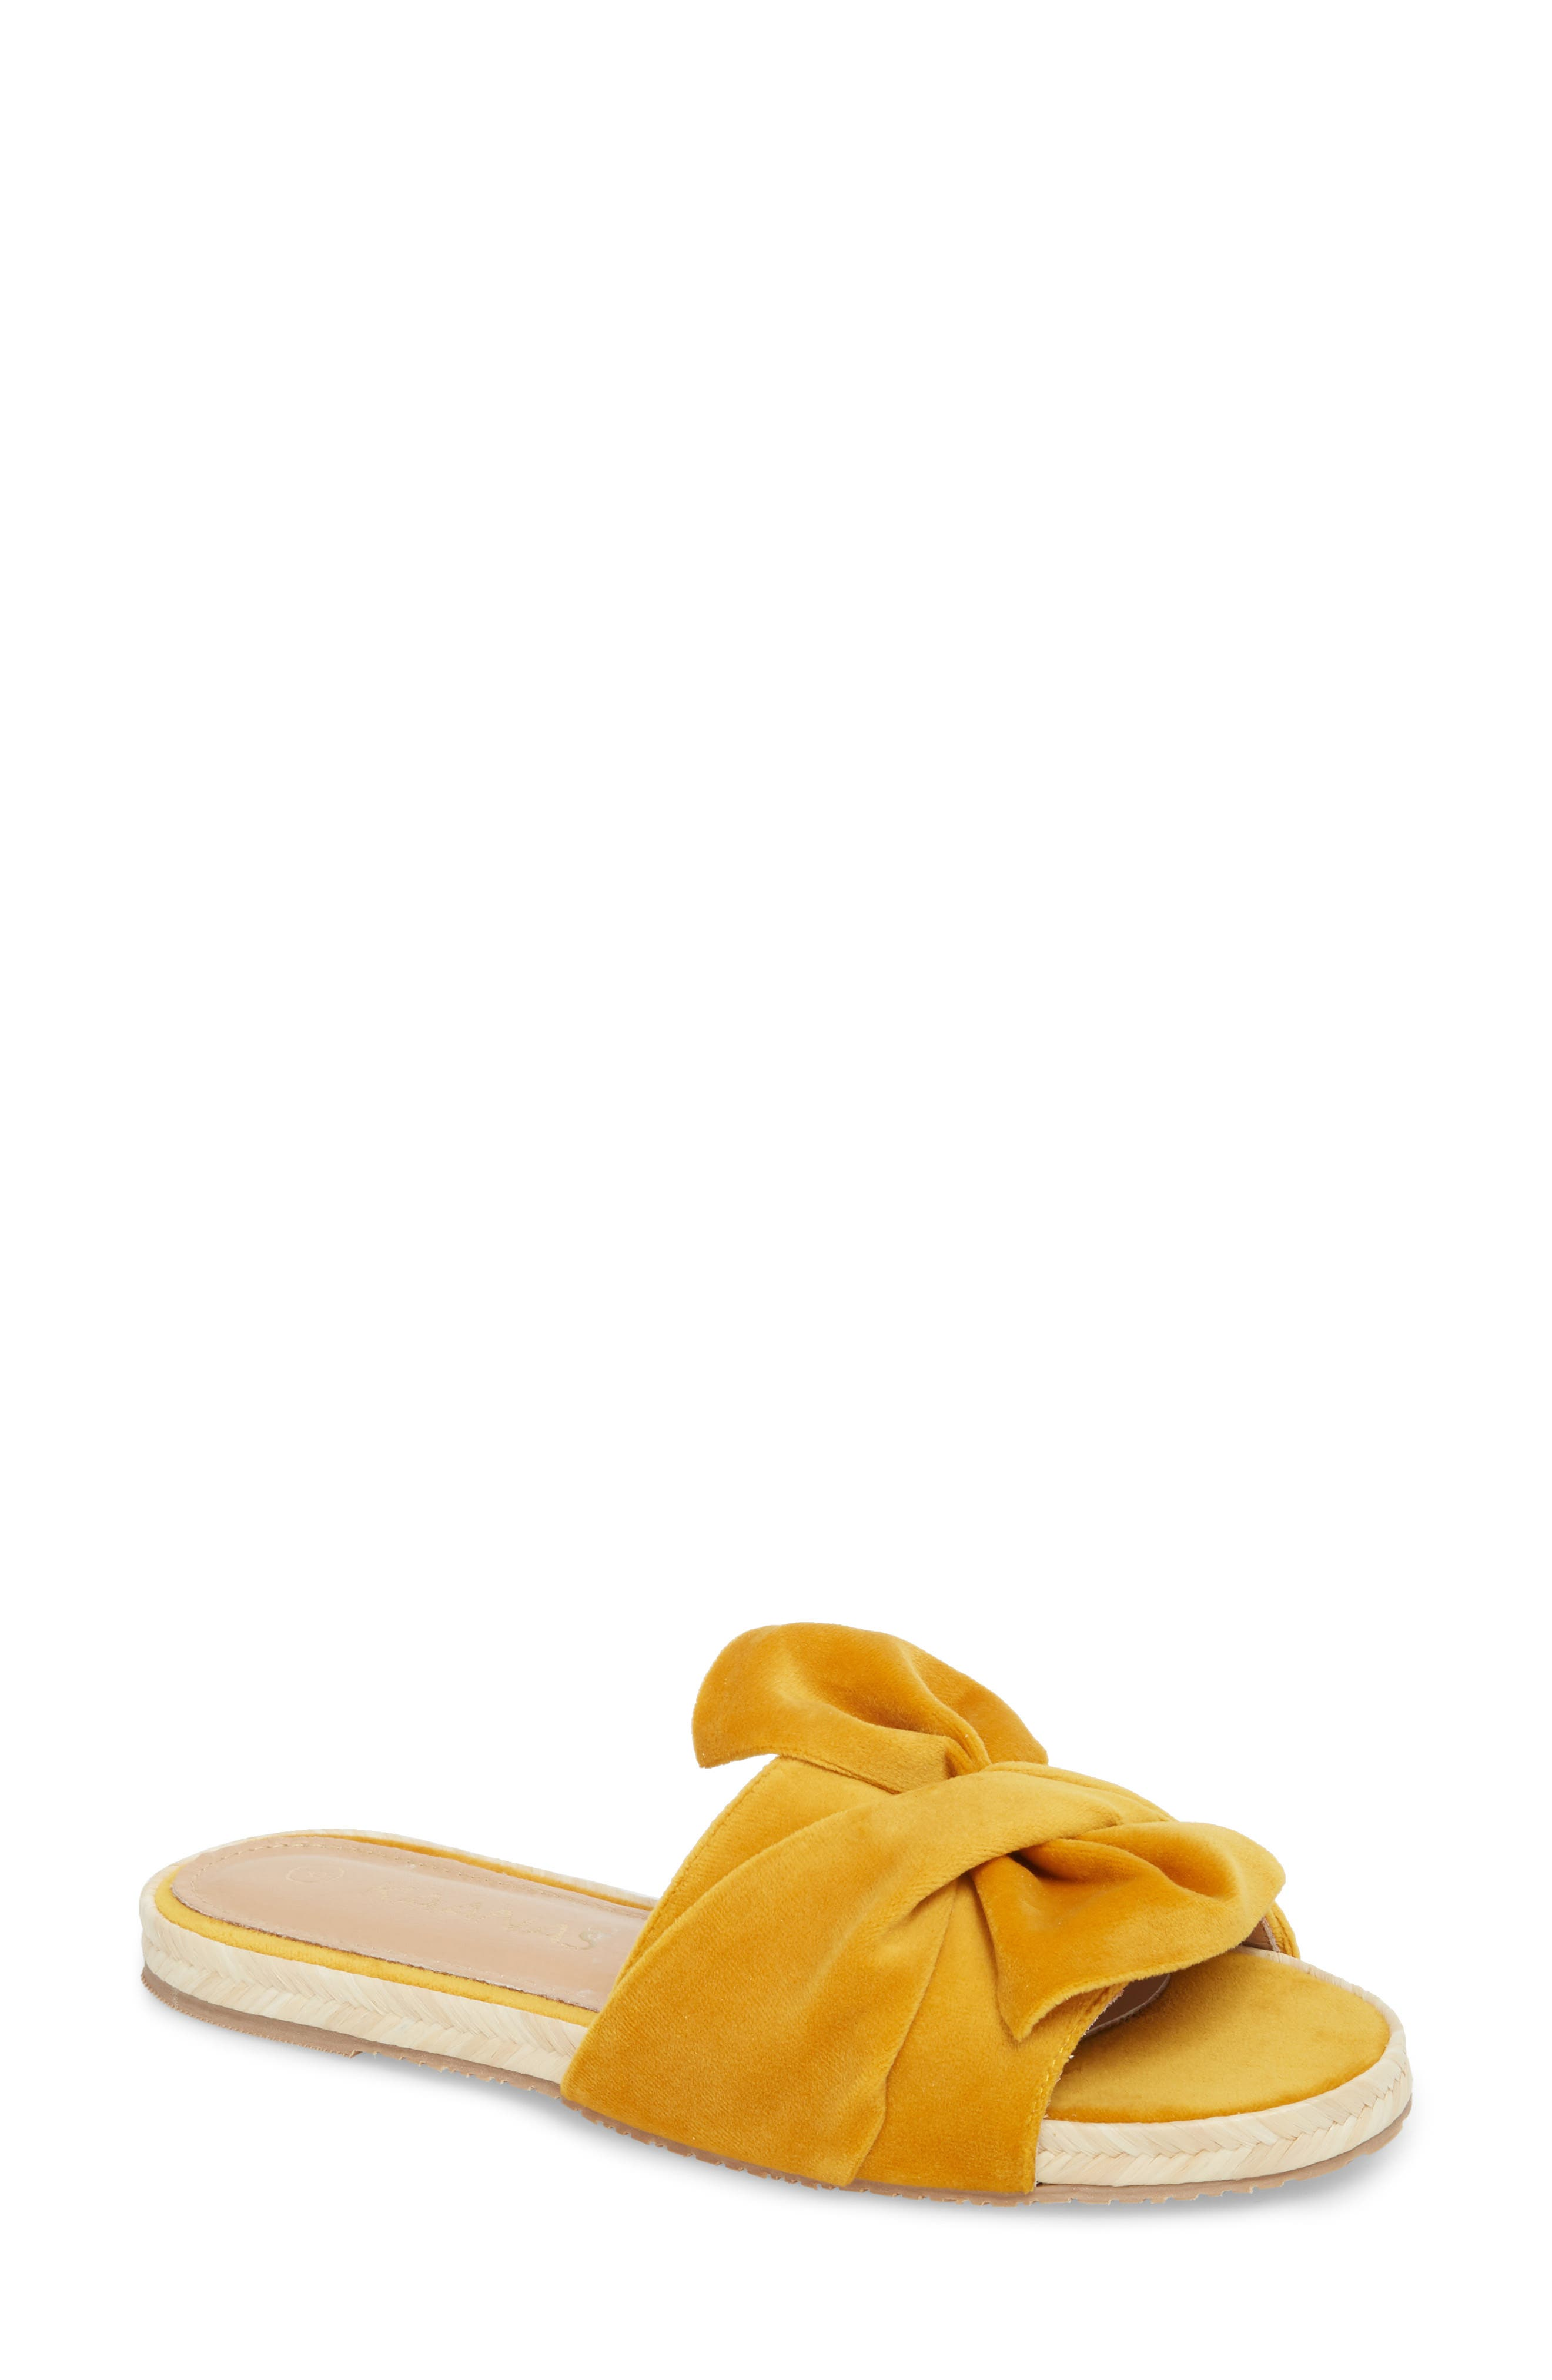 Kaanas Sausalito Knotted Slide Sandal (Women)